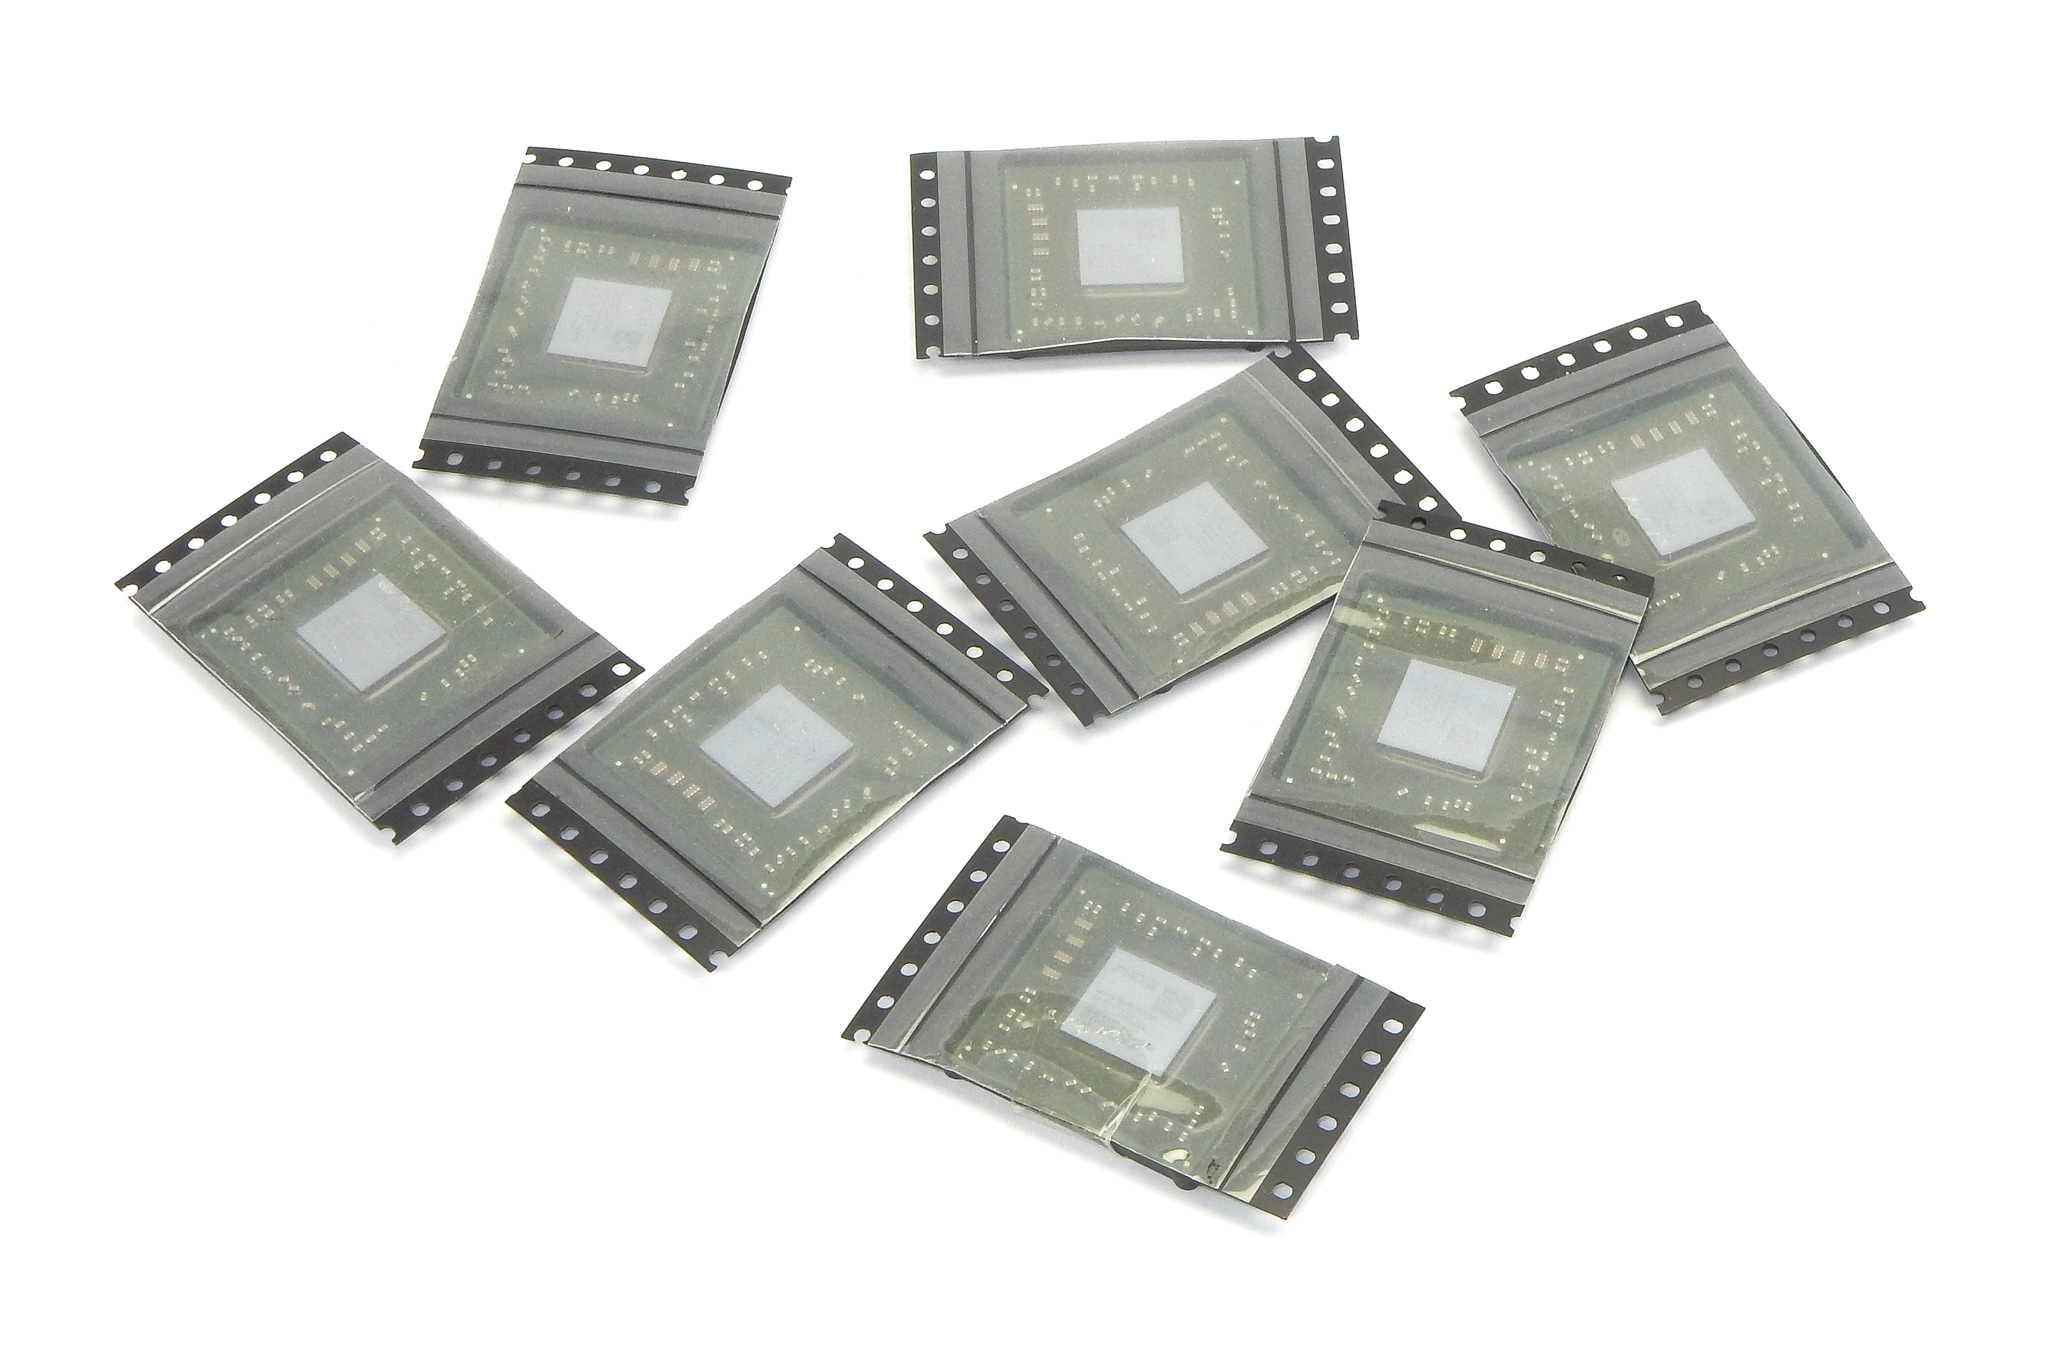 8x NEW AMD AT1250IDJ23HM A4-Series A4-1250 BGA CPU w/ Solder Balls